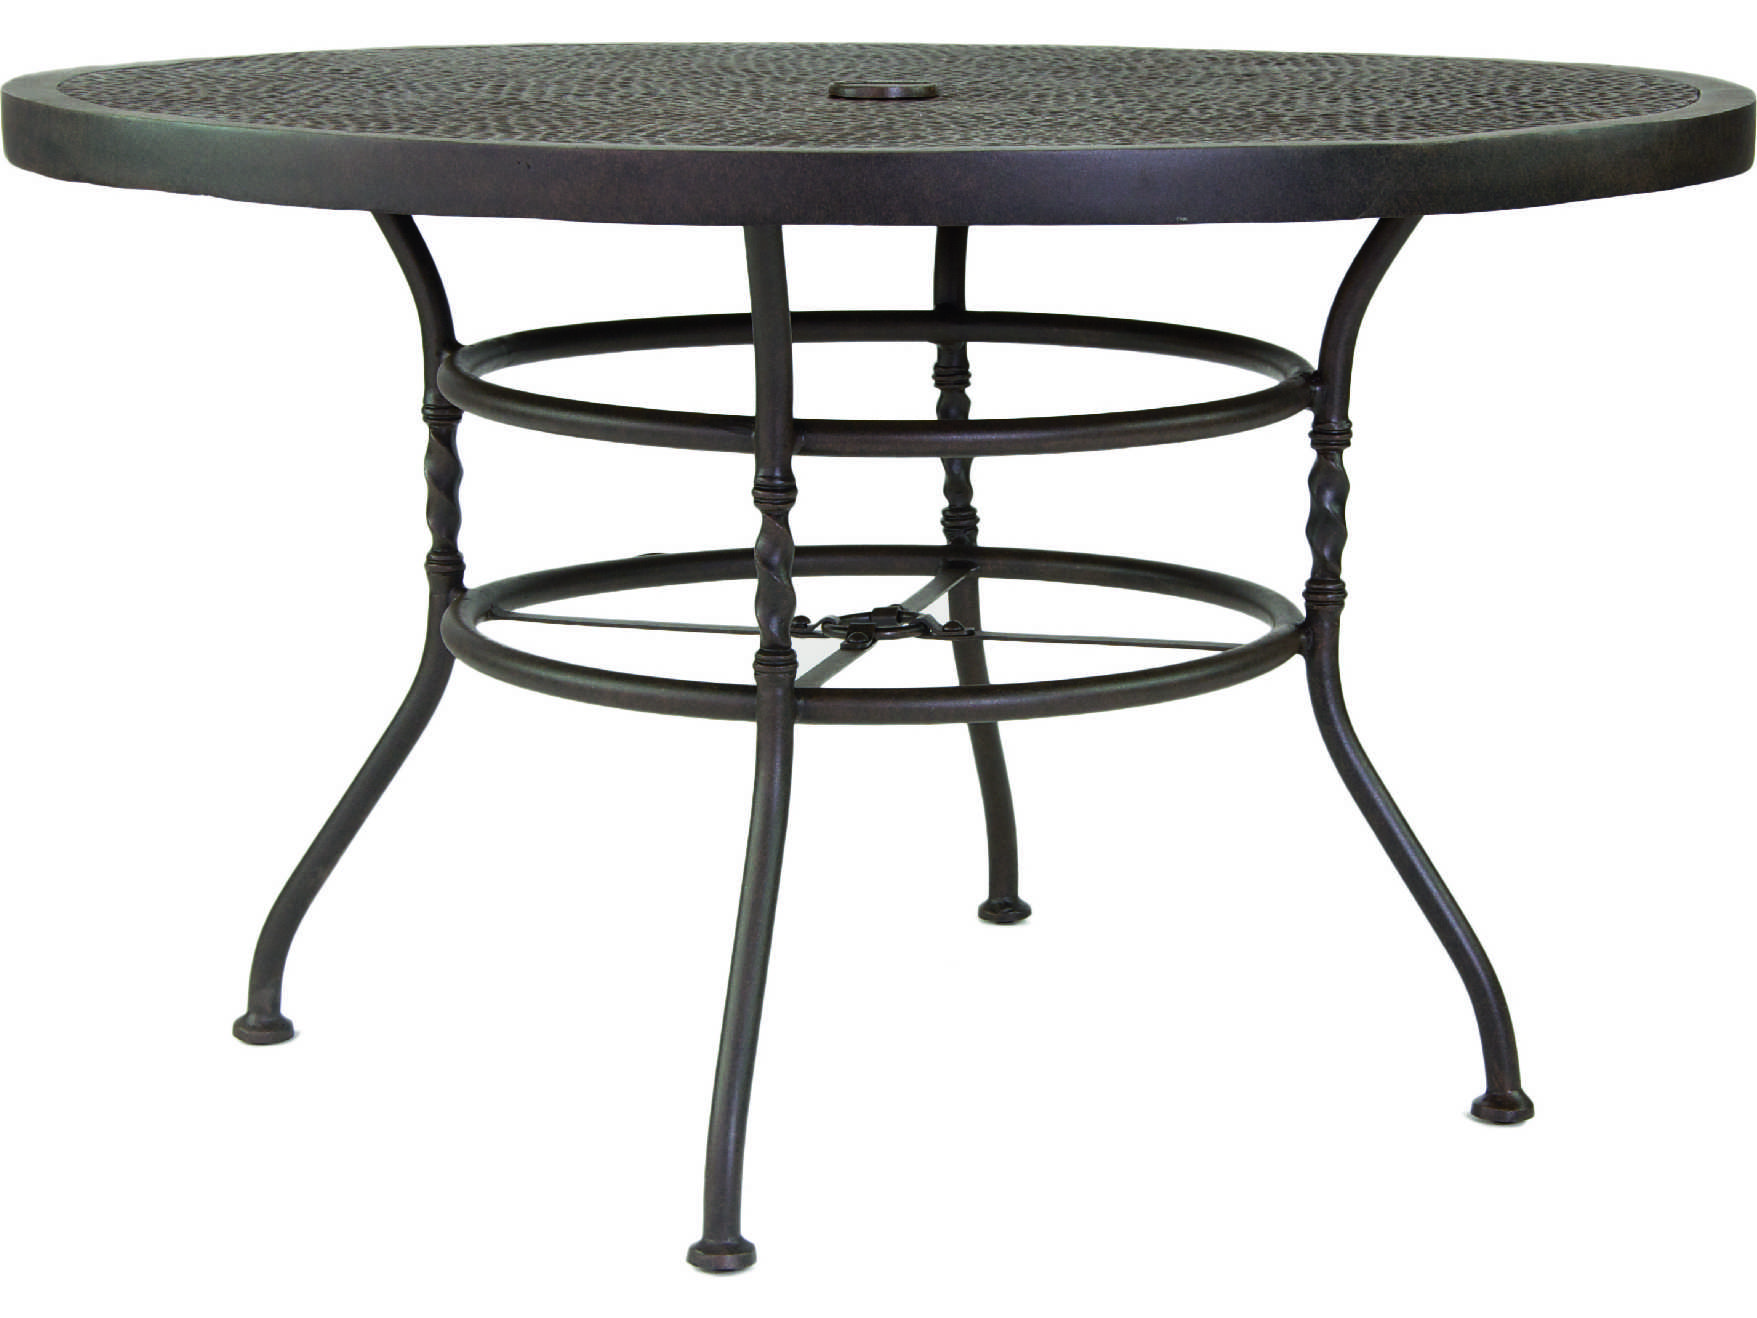 round aluminum patio dining table home decor. Black Bedroom Furniture Sets. Home Design Ideas